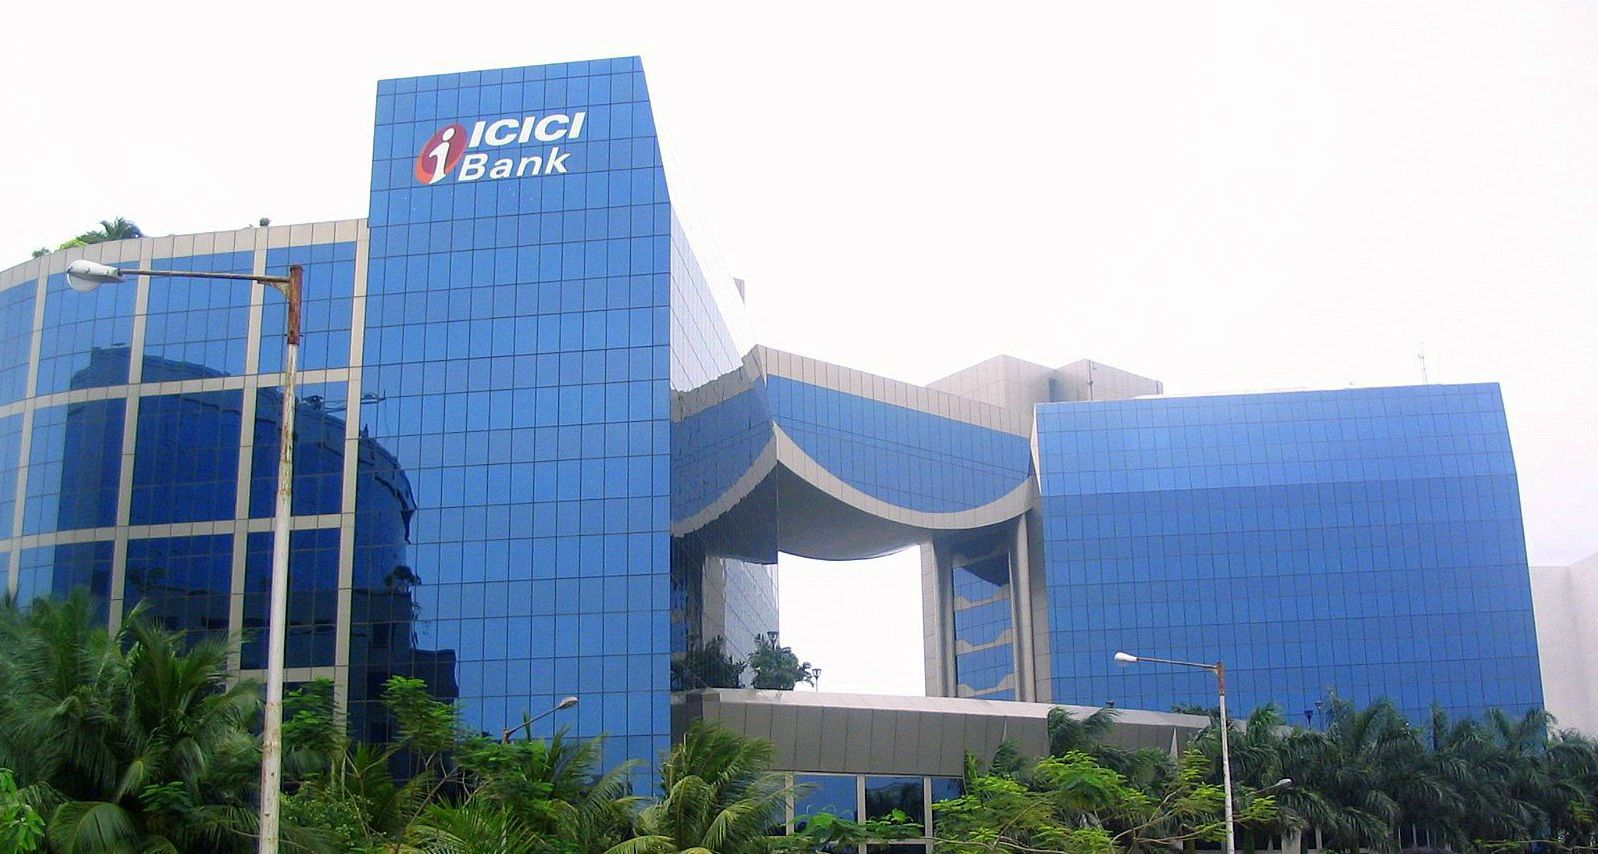 ICICI Bank posts standalone net profit of Rs 1,908 crore for June quarter